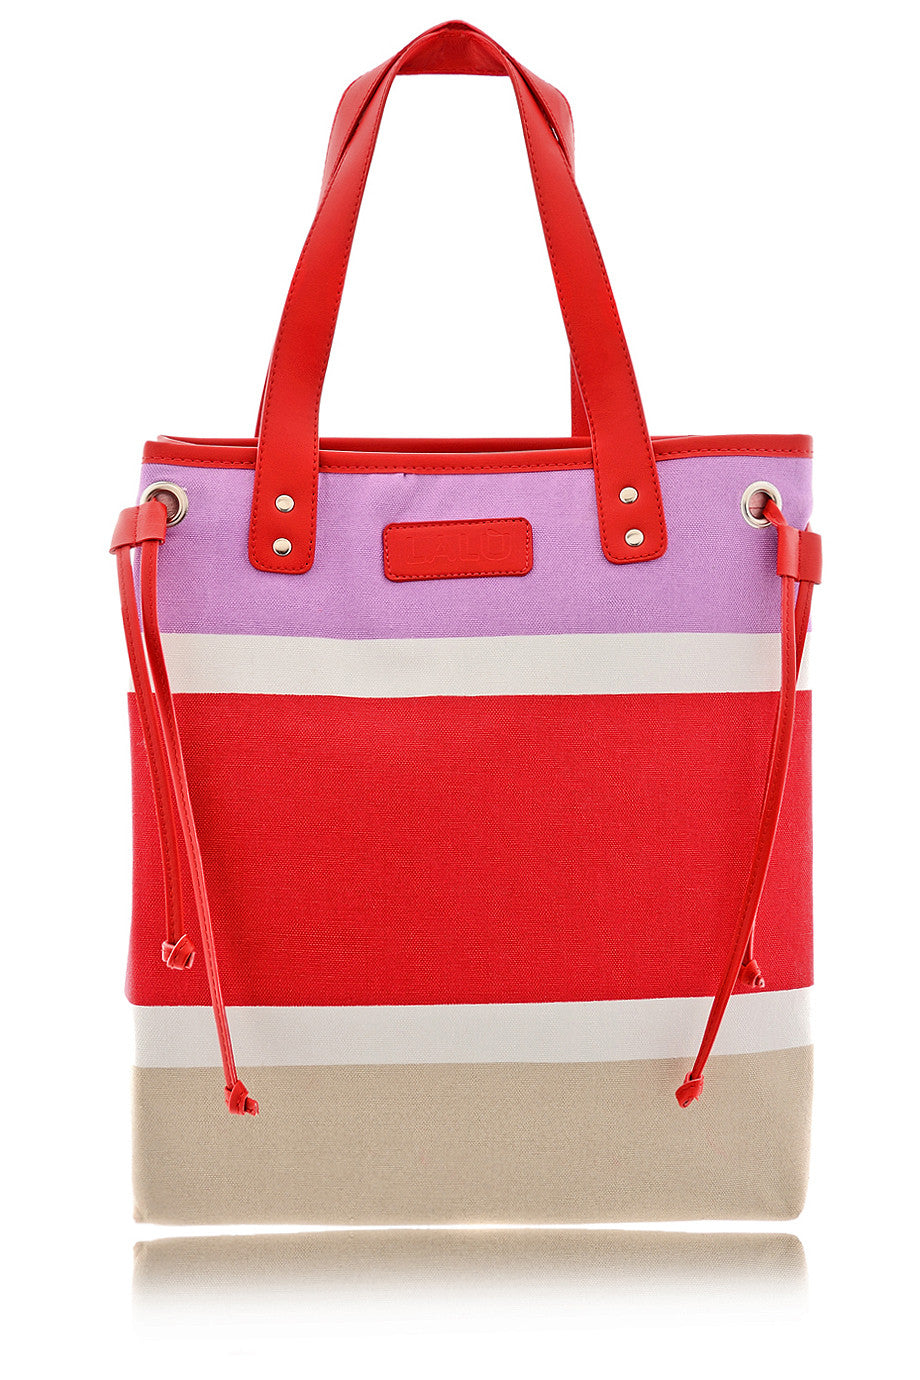 LALU LARINE Red Color Block Shoulder Bag – PRET-A-BEAUTE.COM 857642fc93a2f